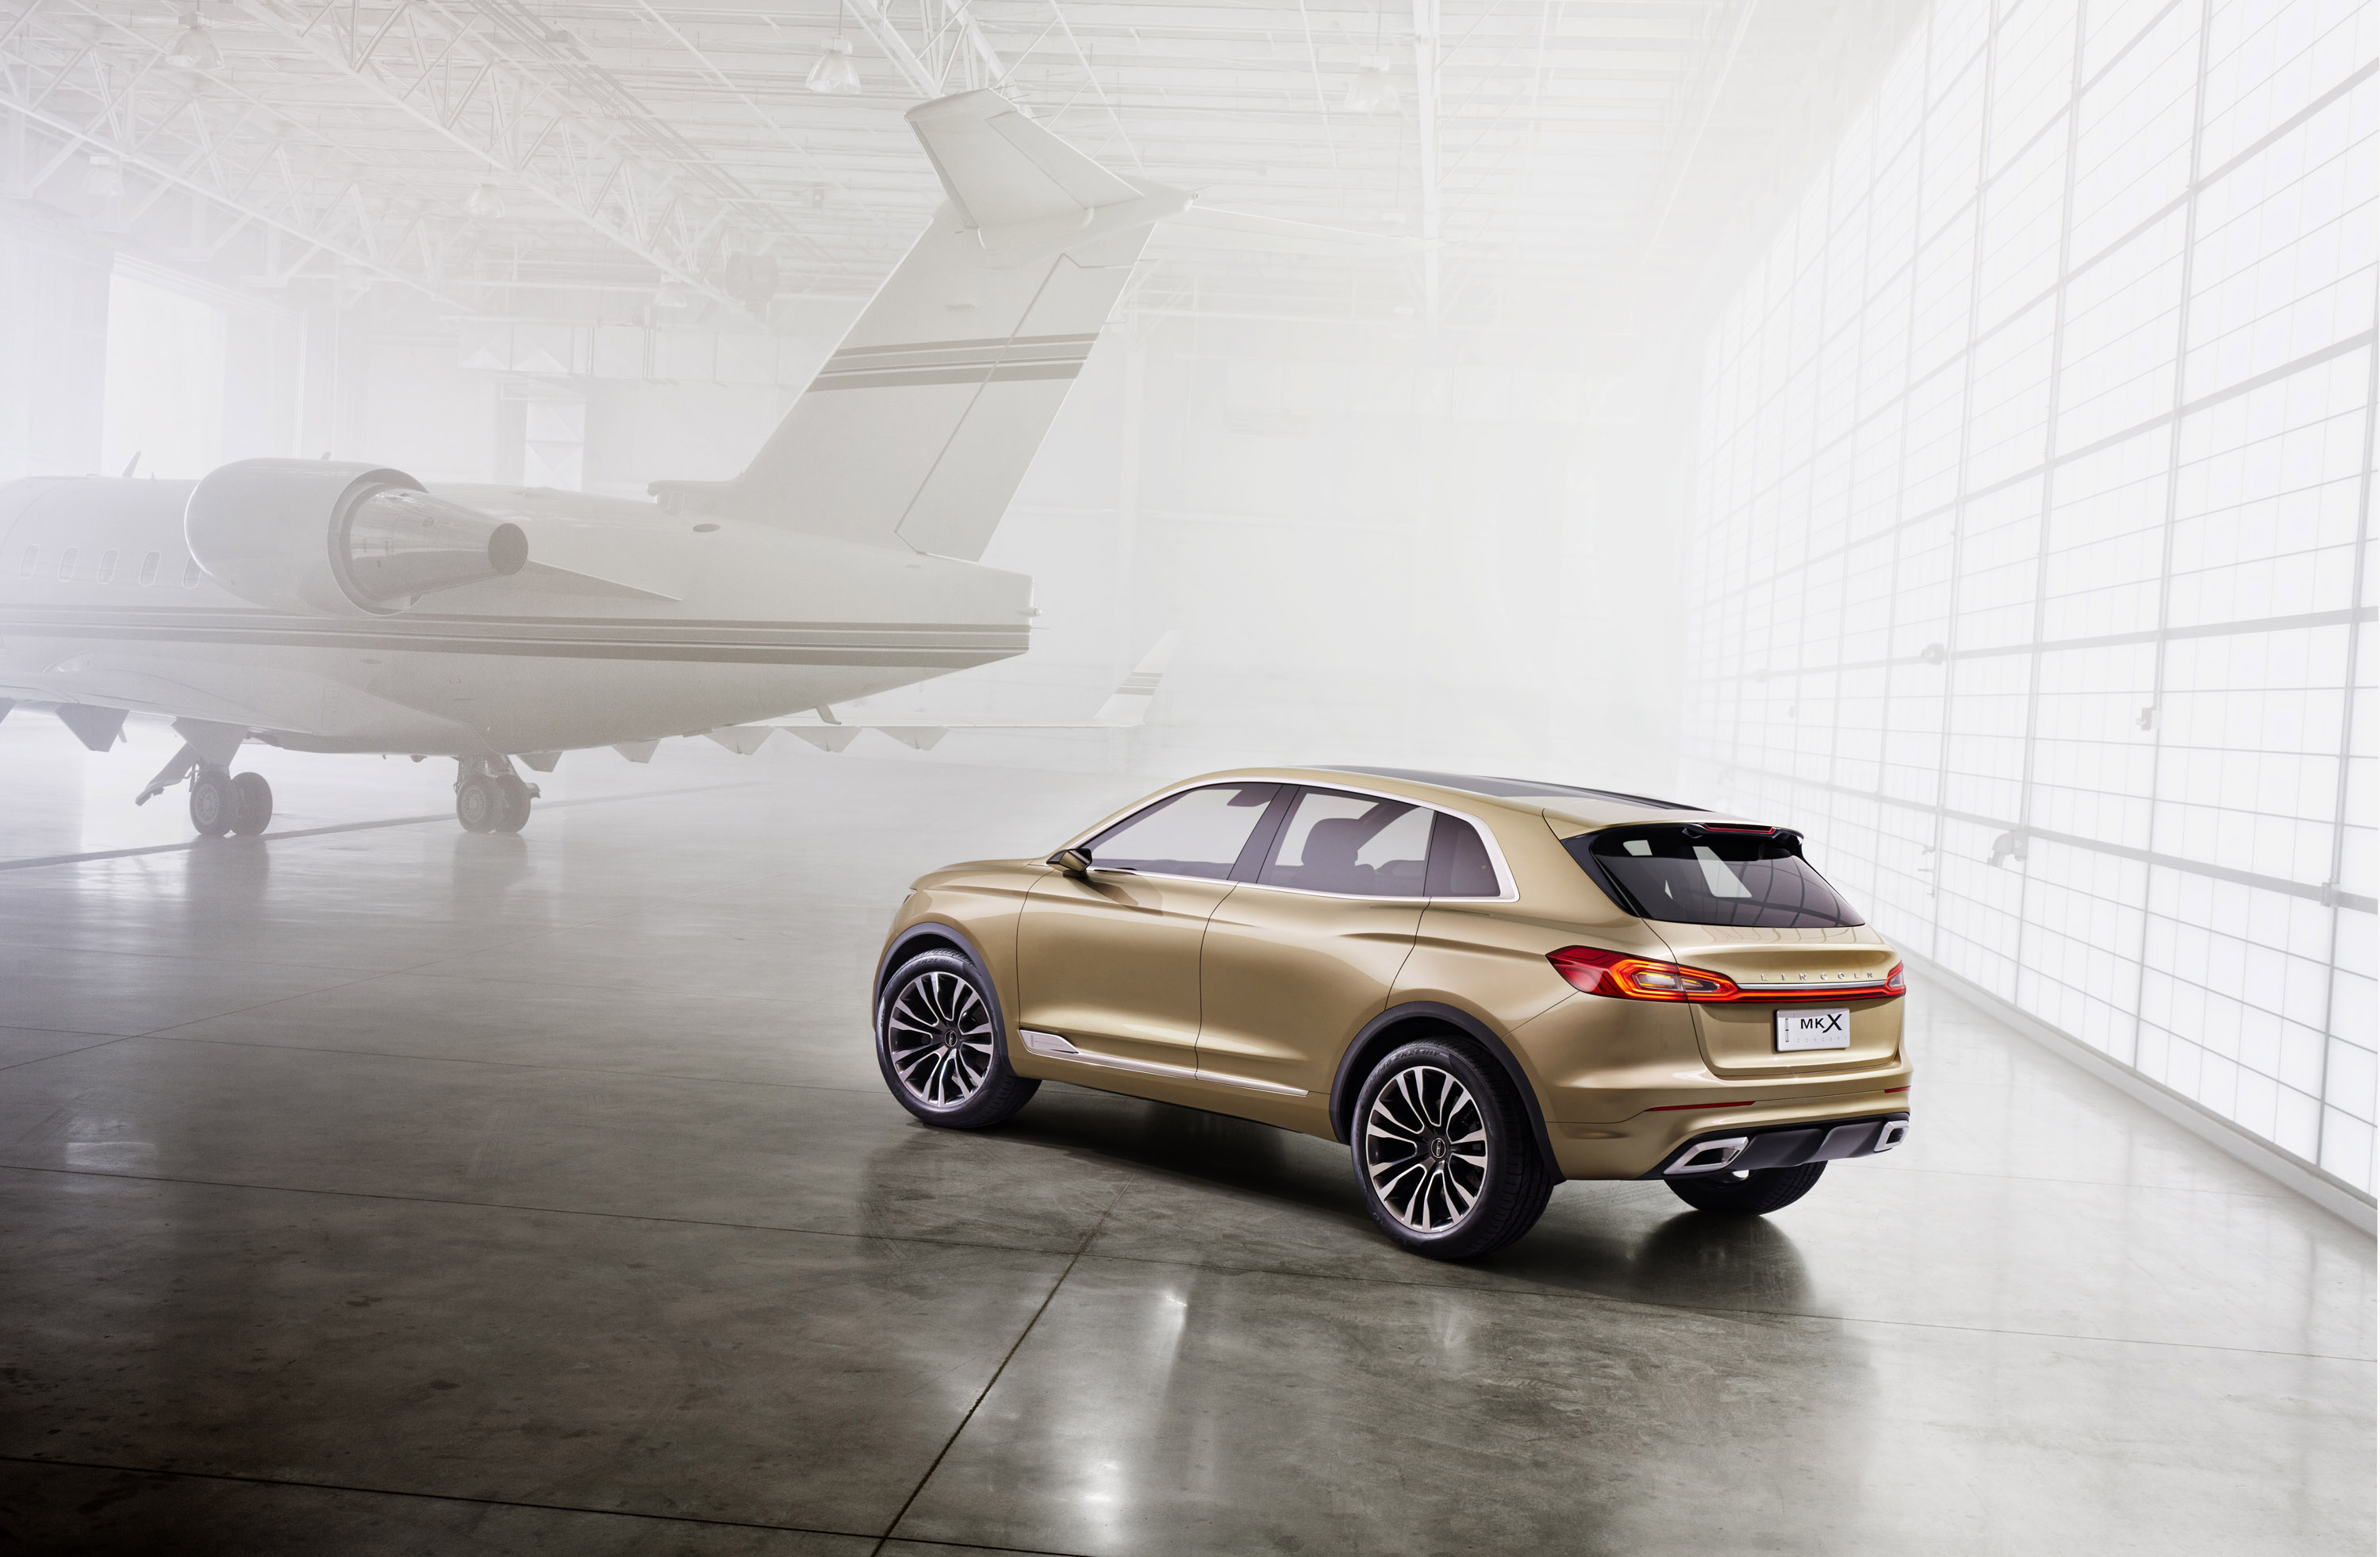 https://www.carsinvasion.com/gallery/2014-lincoln-mkx-concept/2014-lincoln-mkx-concept-07.jpg